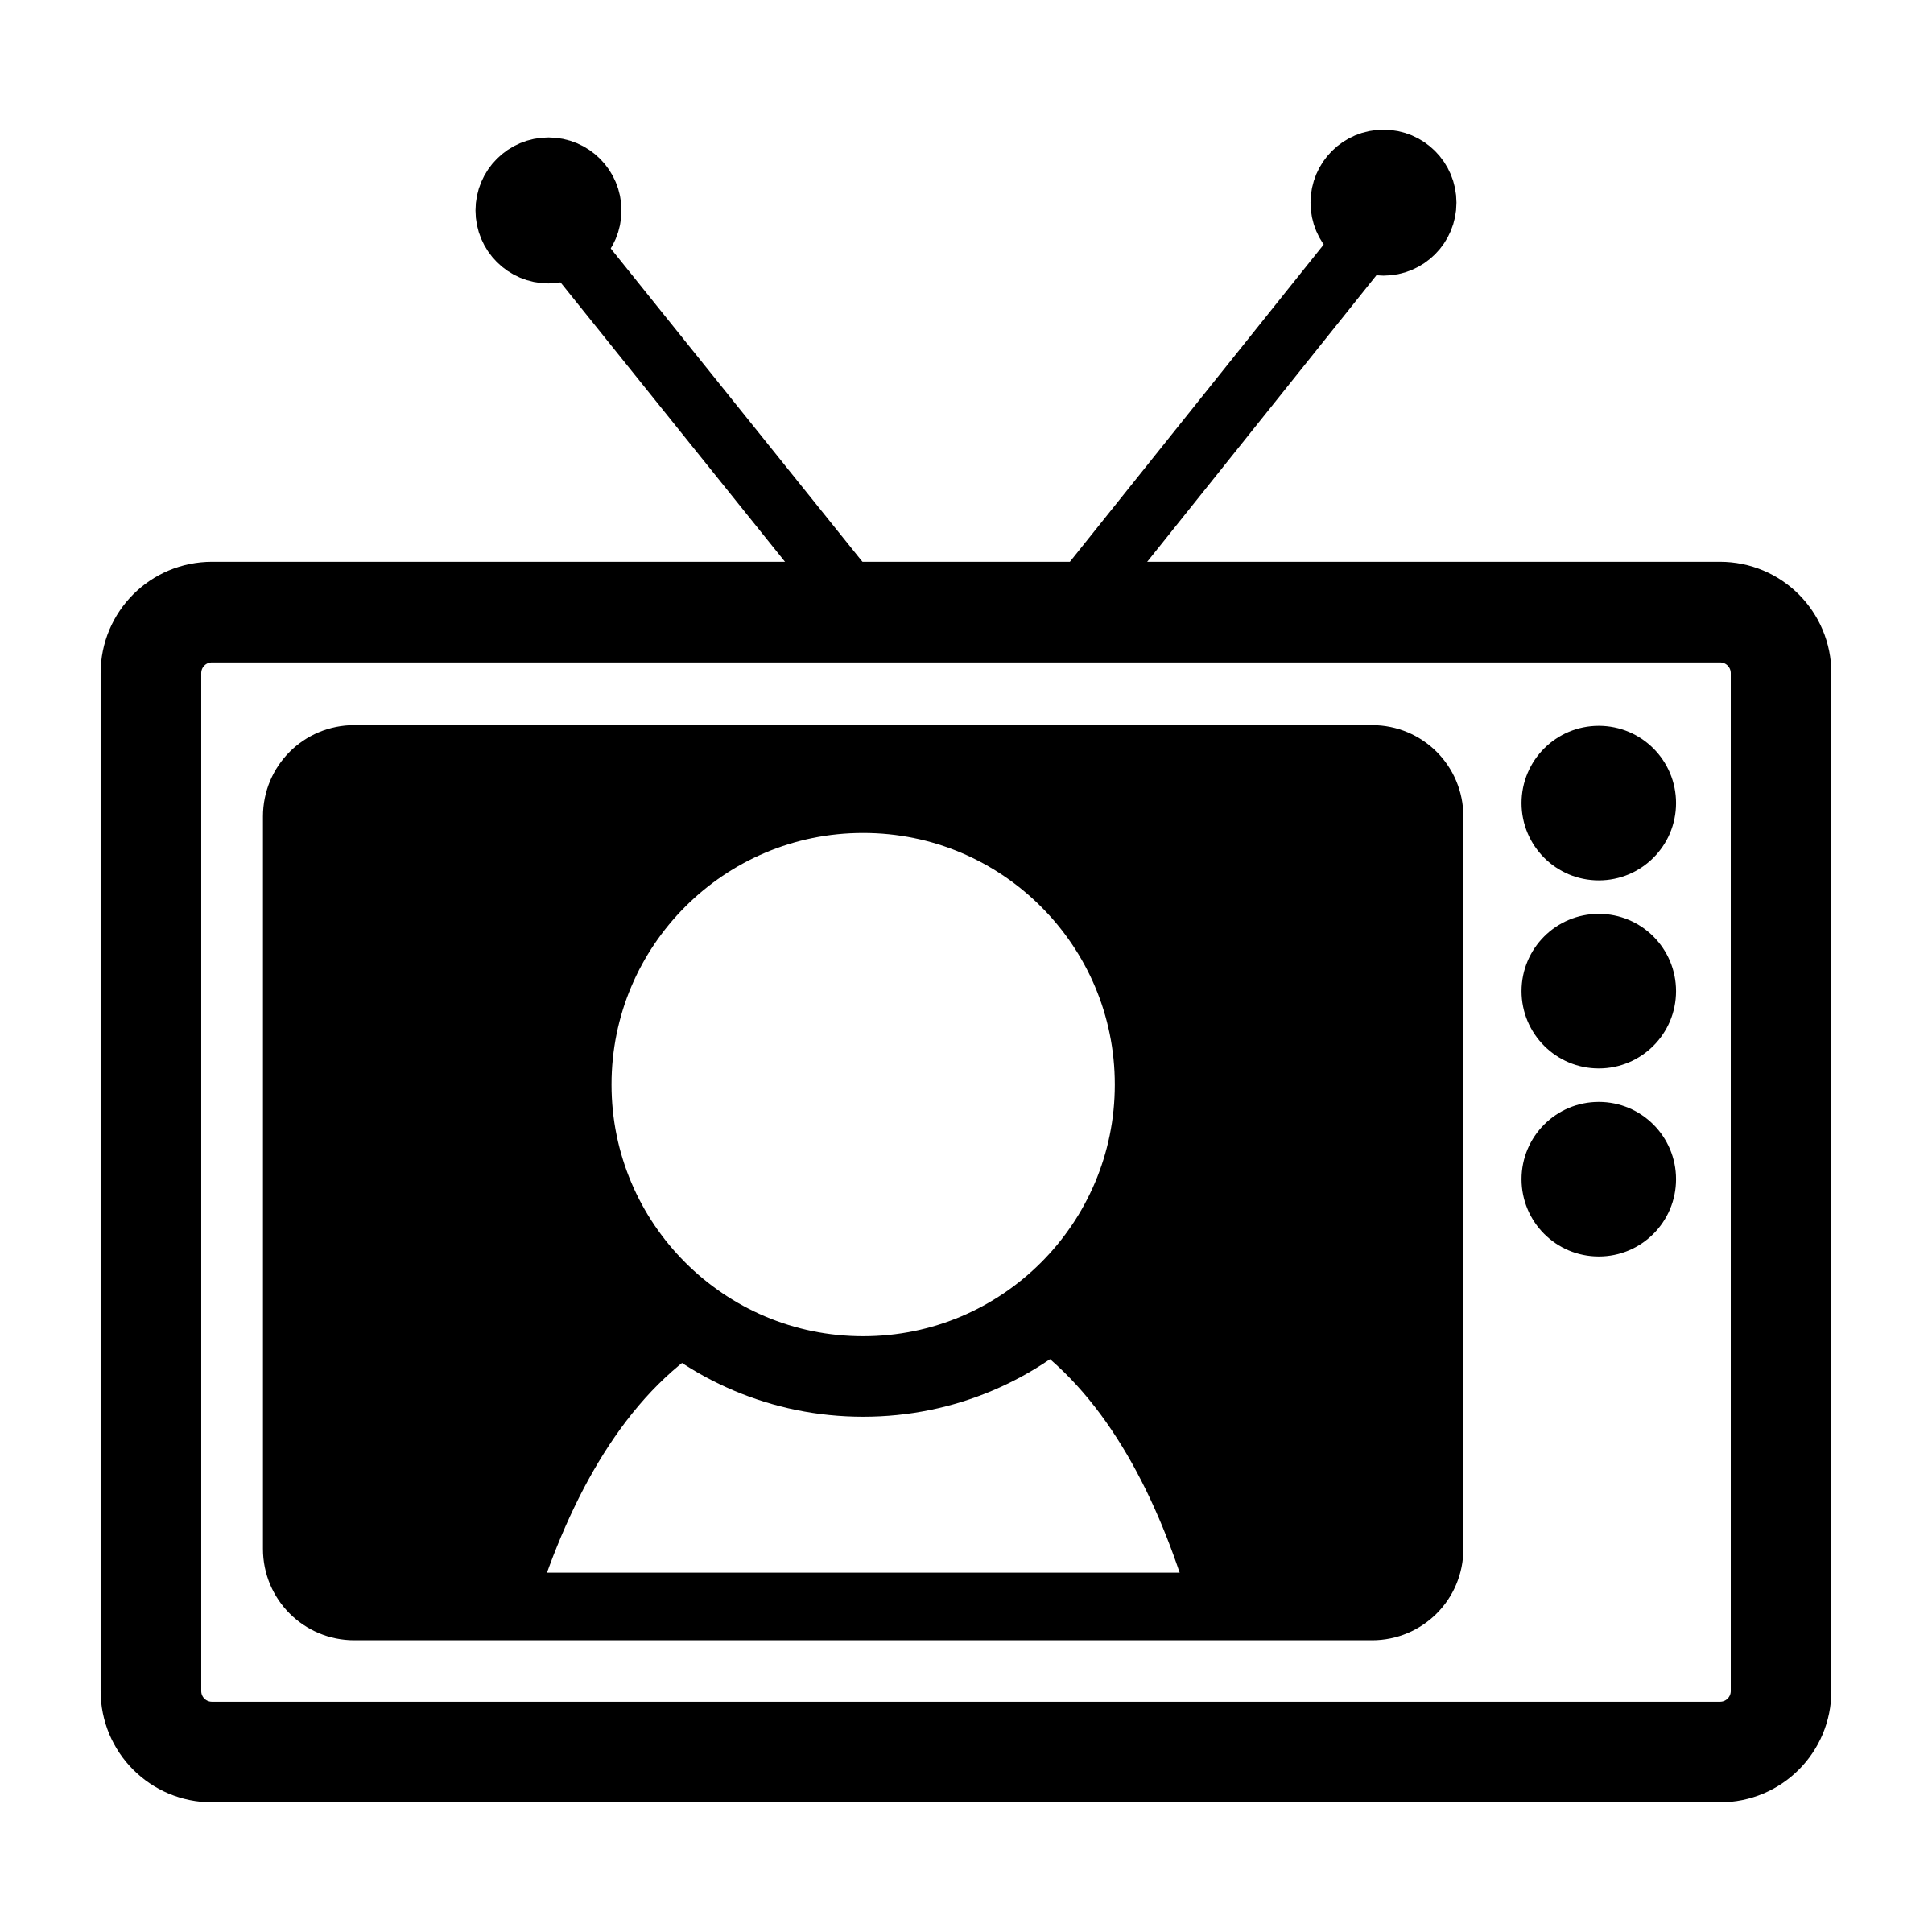 tv clipart black and white. mono tv by dannya clipart black and white